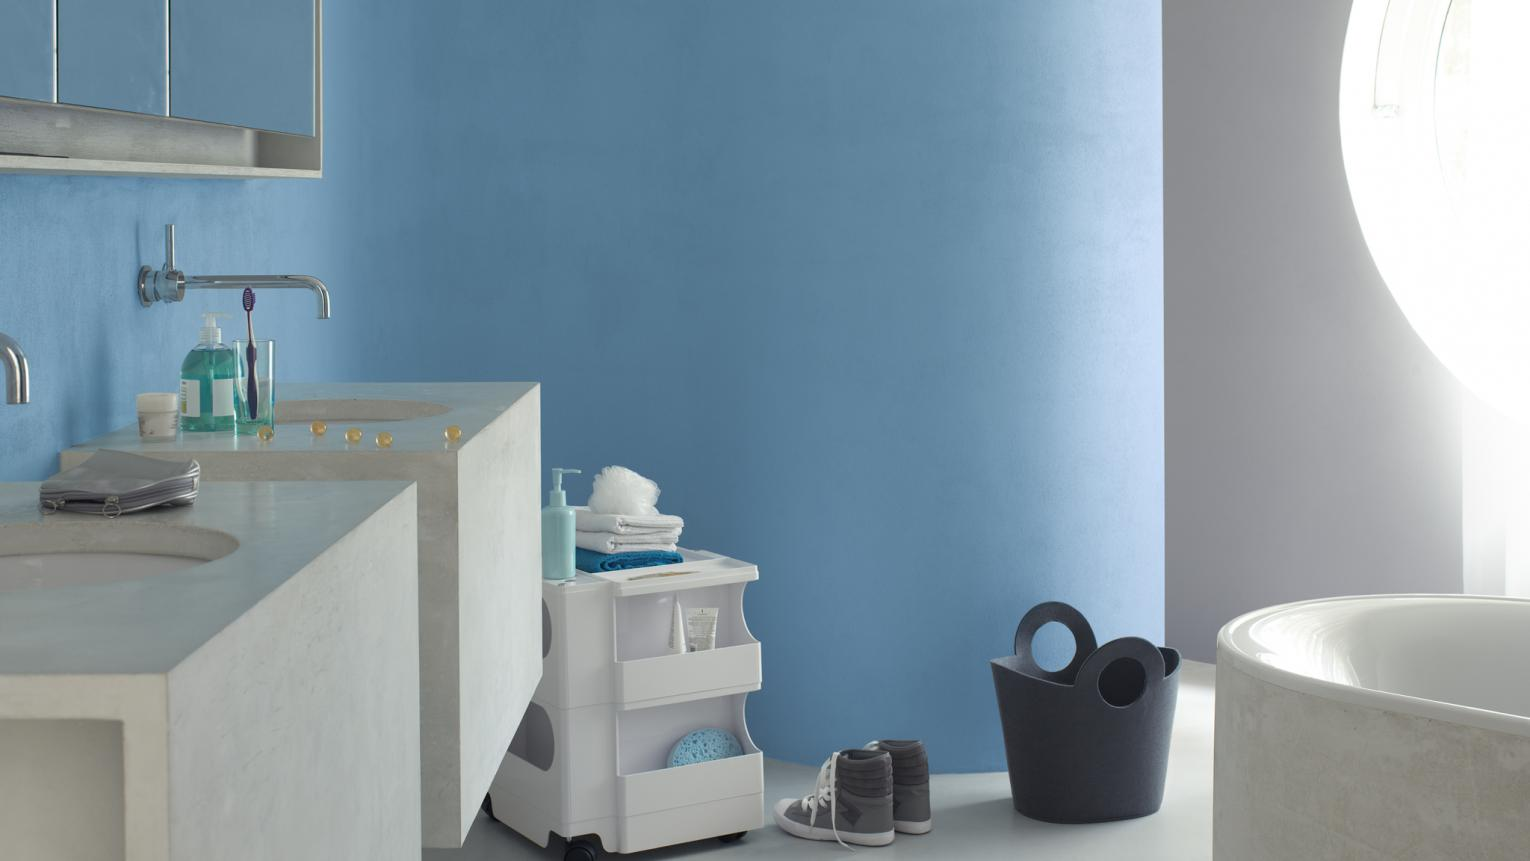 Refreshing aqua blue with soft grey creates a calm bathroom.